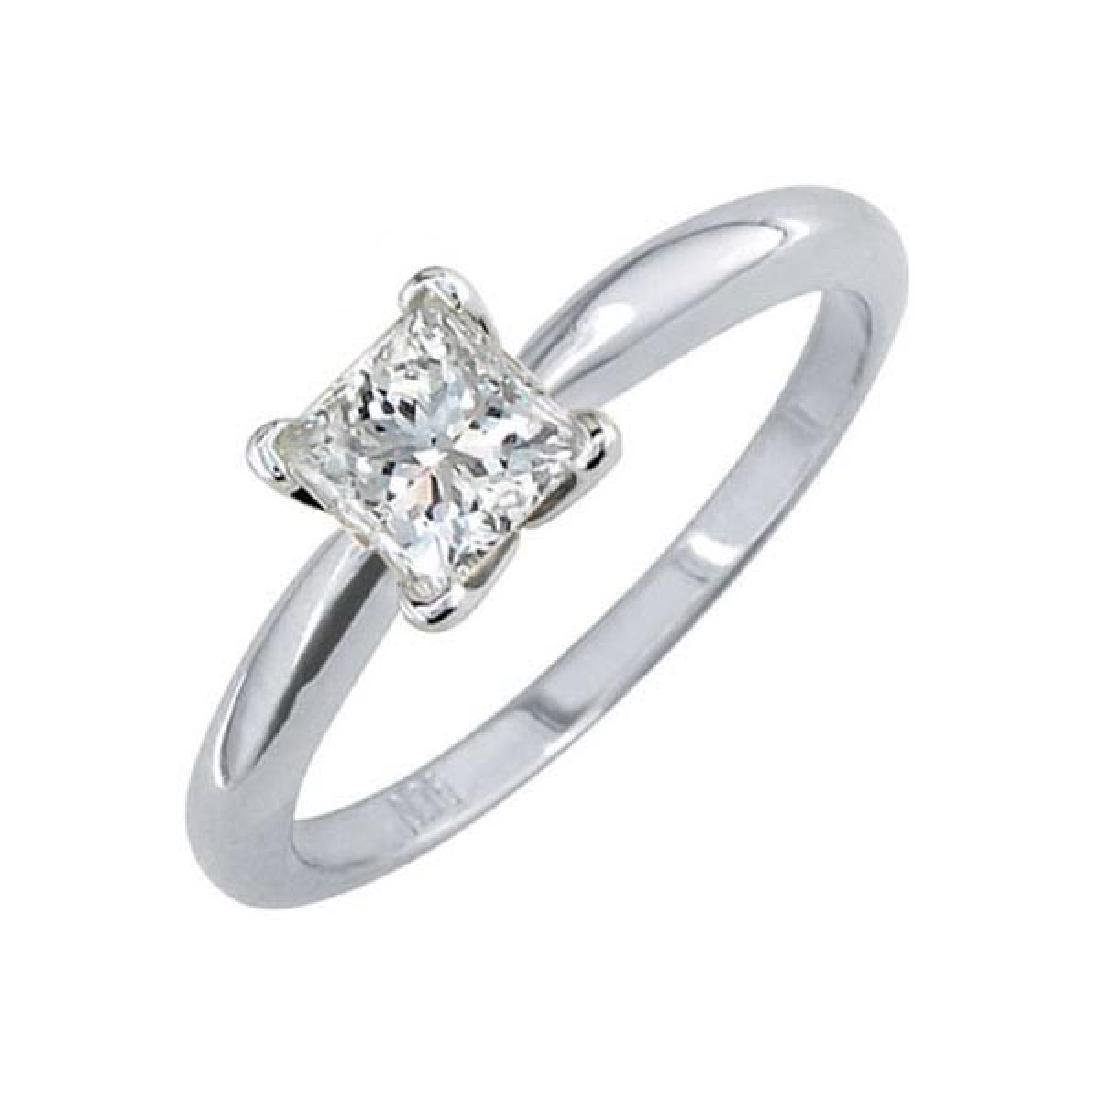 Certified 1.18 CTW Princess Diamond Solitaire 14k Ring